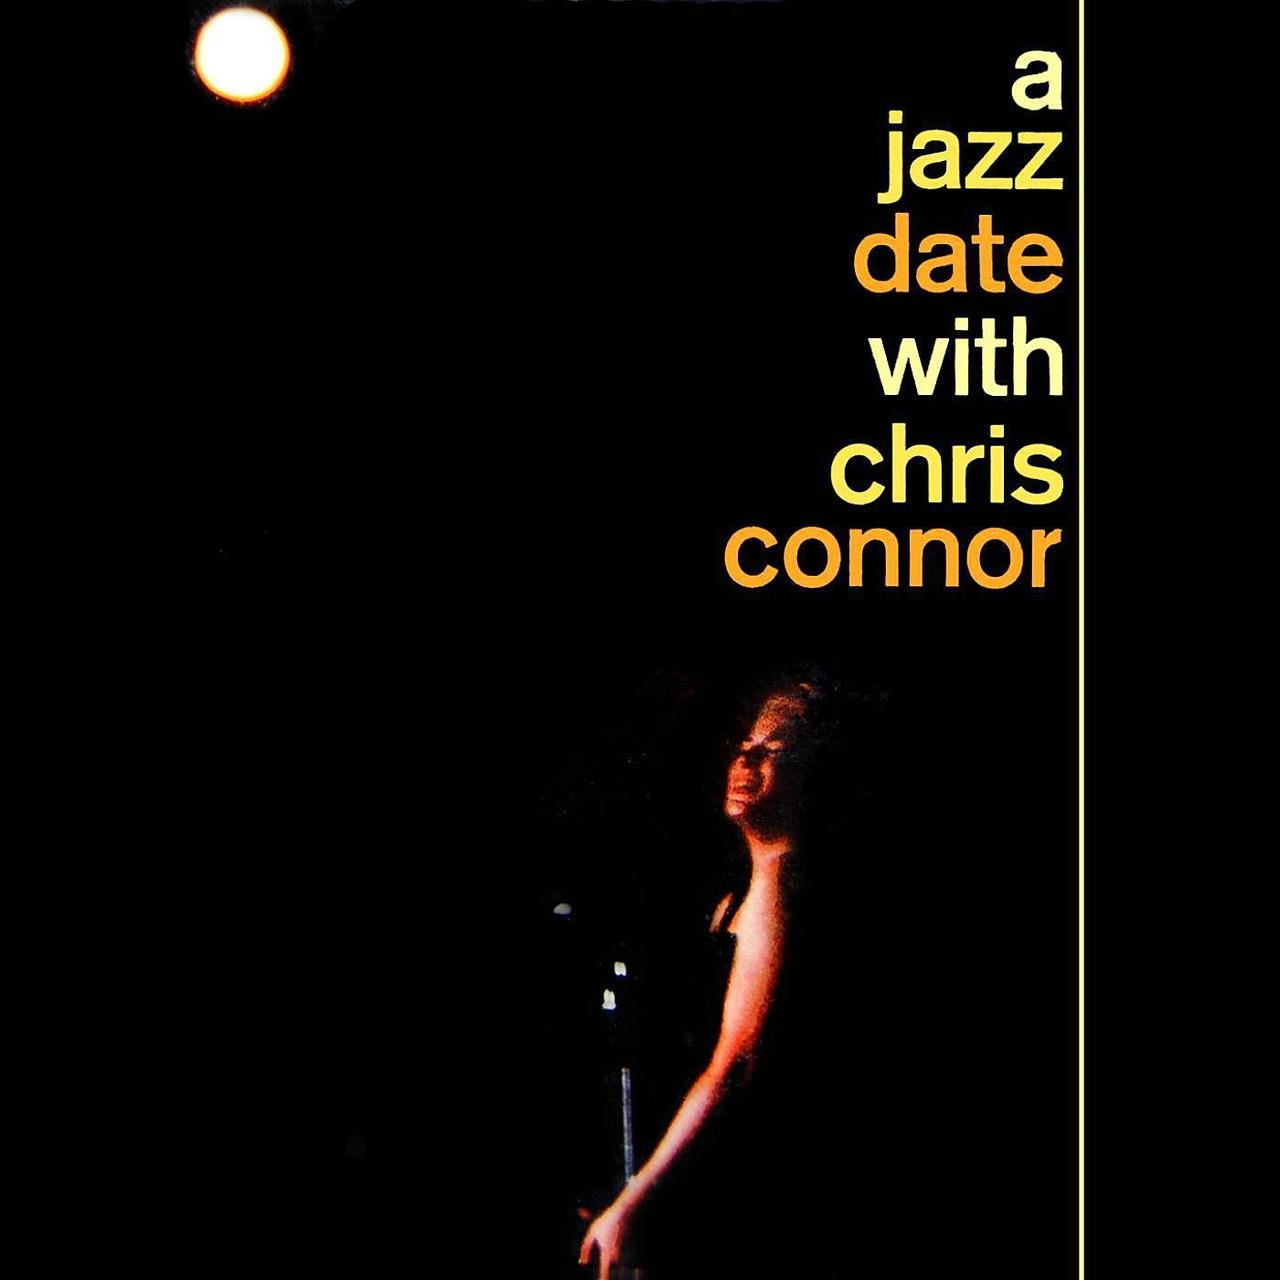 Chris Connor - A Jazz Date with Chris Connor (1956)